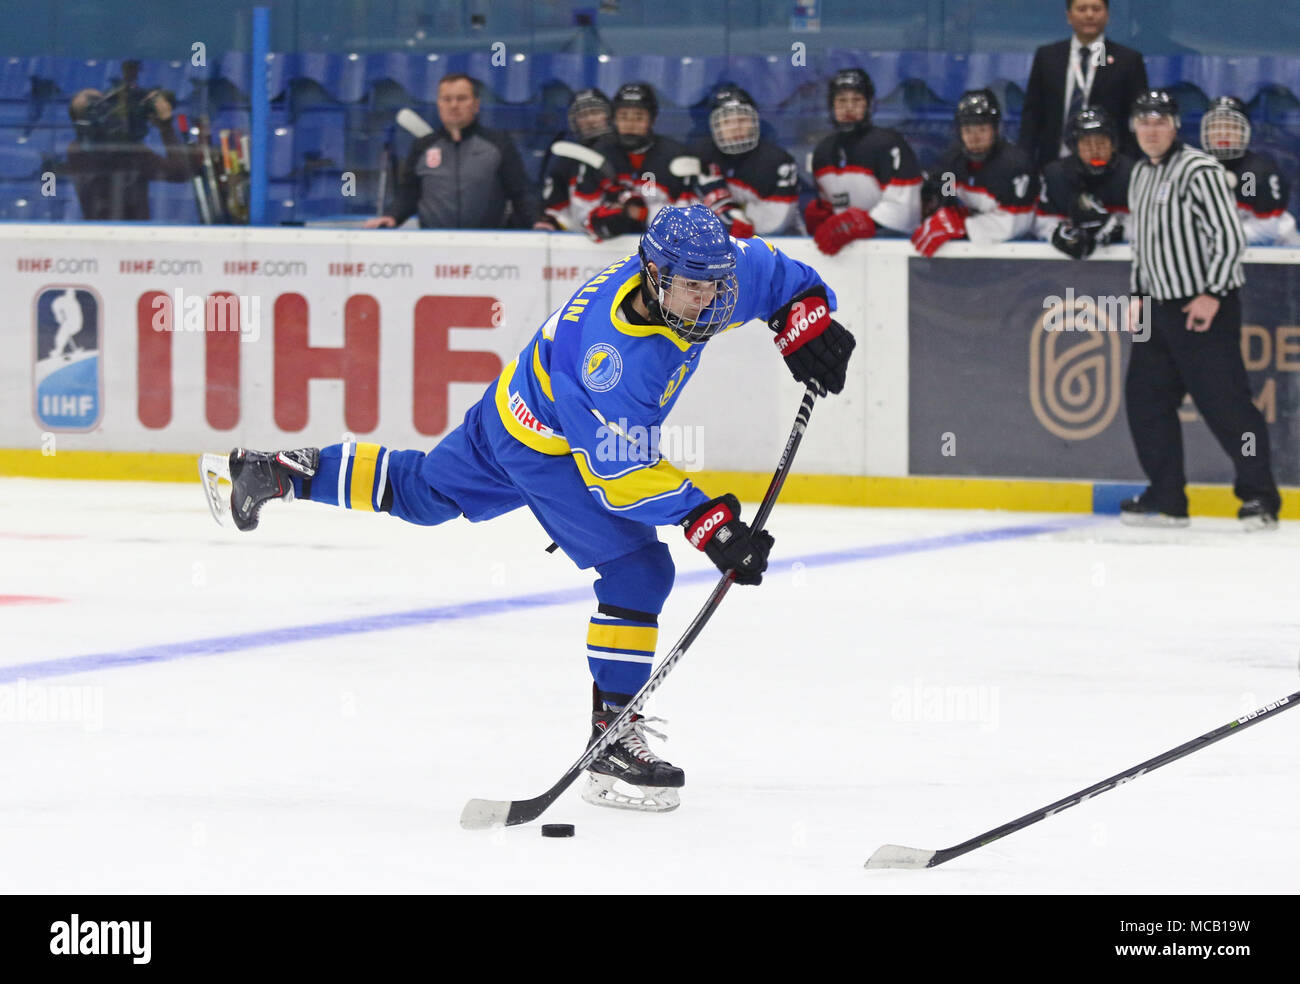 Kiev, Ukraine. 14th April, 2018. Dmytro Khalin of Ukraine in action during the IIHF 2018 Ice Hockey U18 World Championship Div 1 Group B game against Japan at Palace of Sports in Kyiv, Ukraine. Japan won 1-0. Credit: Oleksandr Prykhodko/Alamy Live News - Stock Image